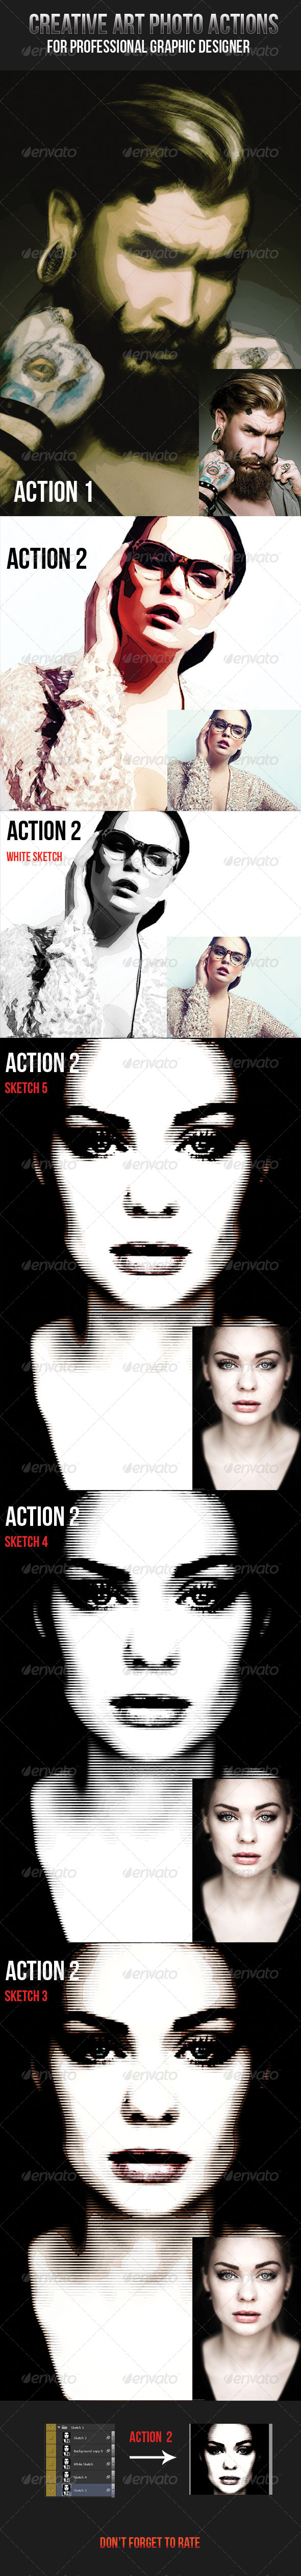 GraphicRiver Creative Art Photo Actions 7831345